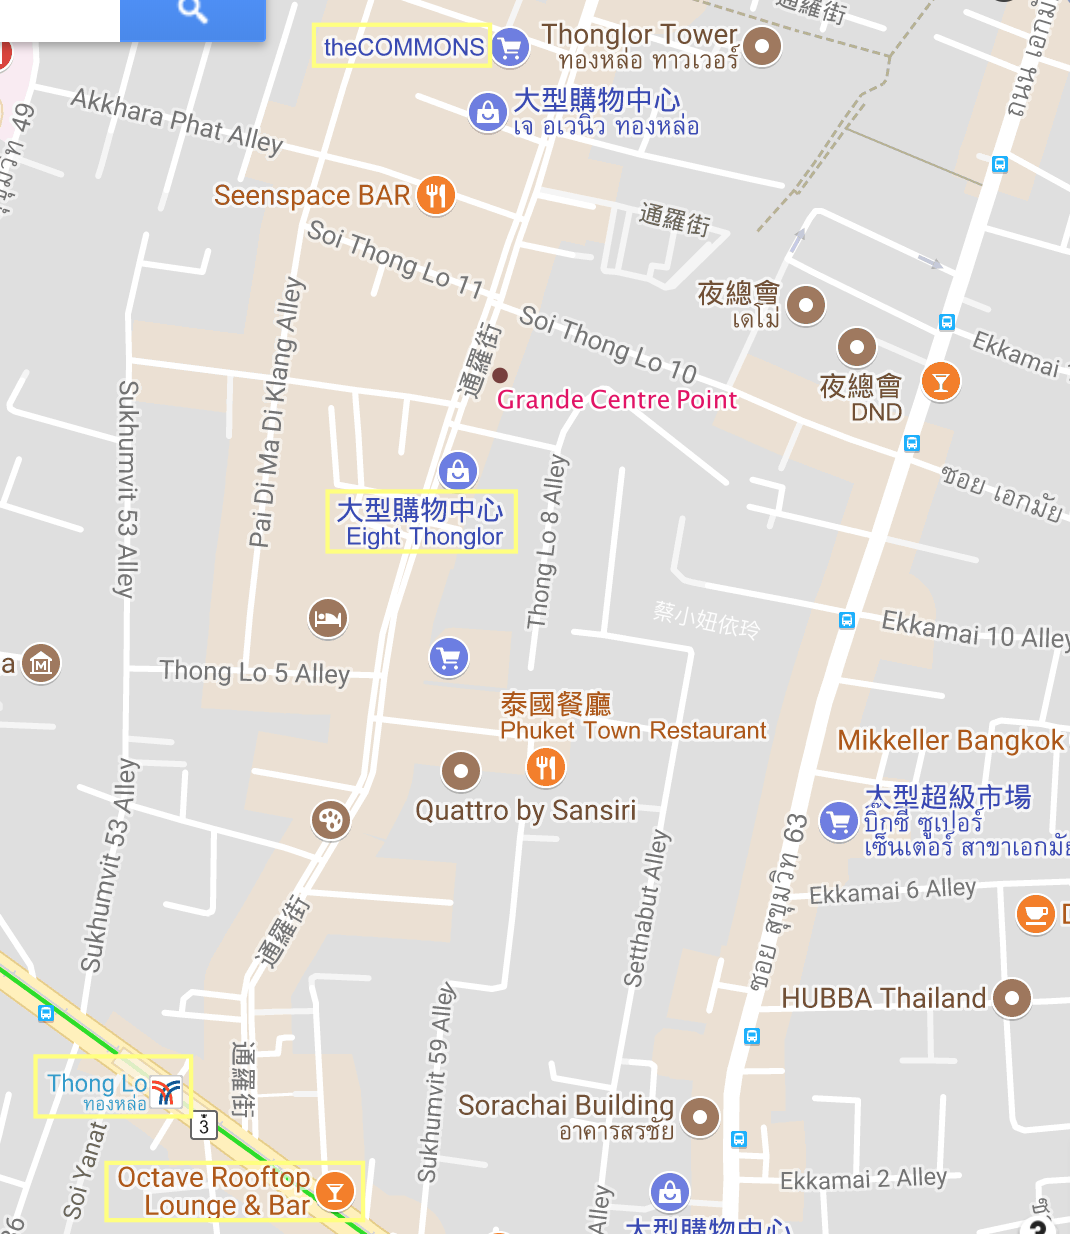 曼谷飯店推薦 Grande Centre Point Sukhumvit 55 Thonglor區平價五星飯店